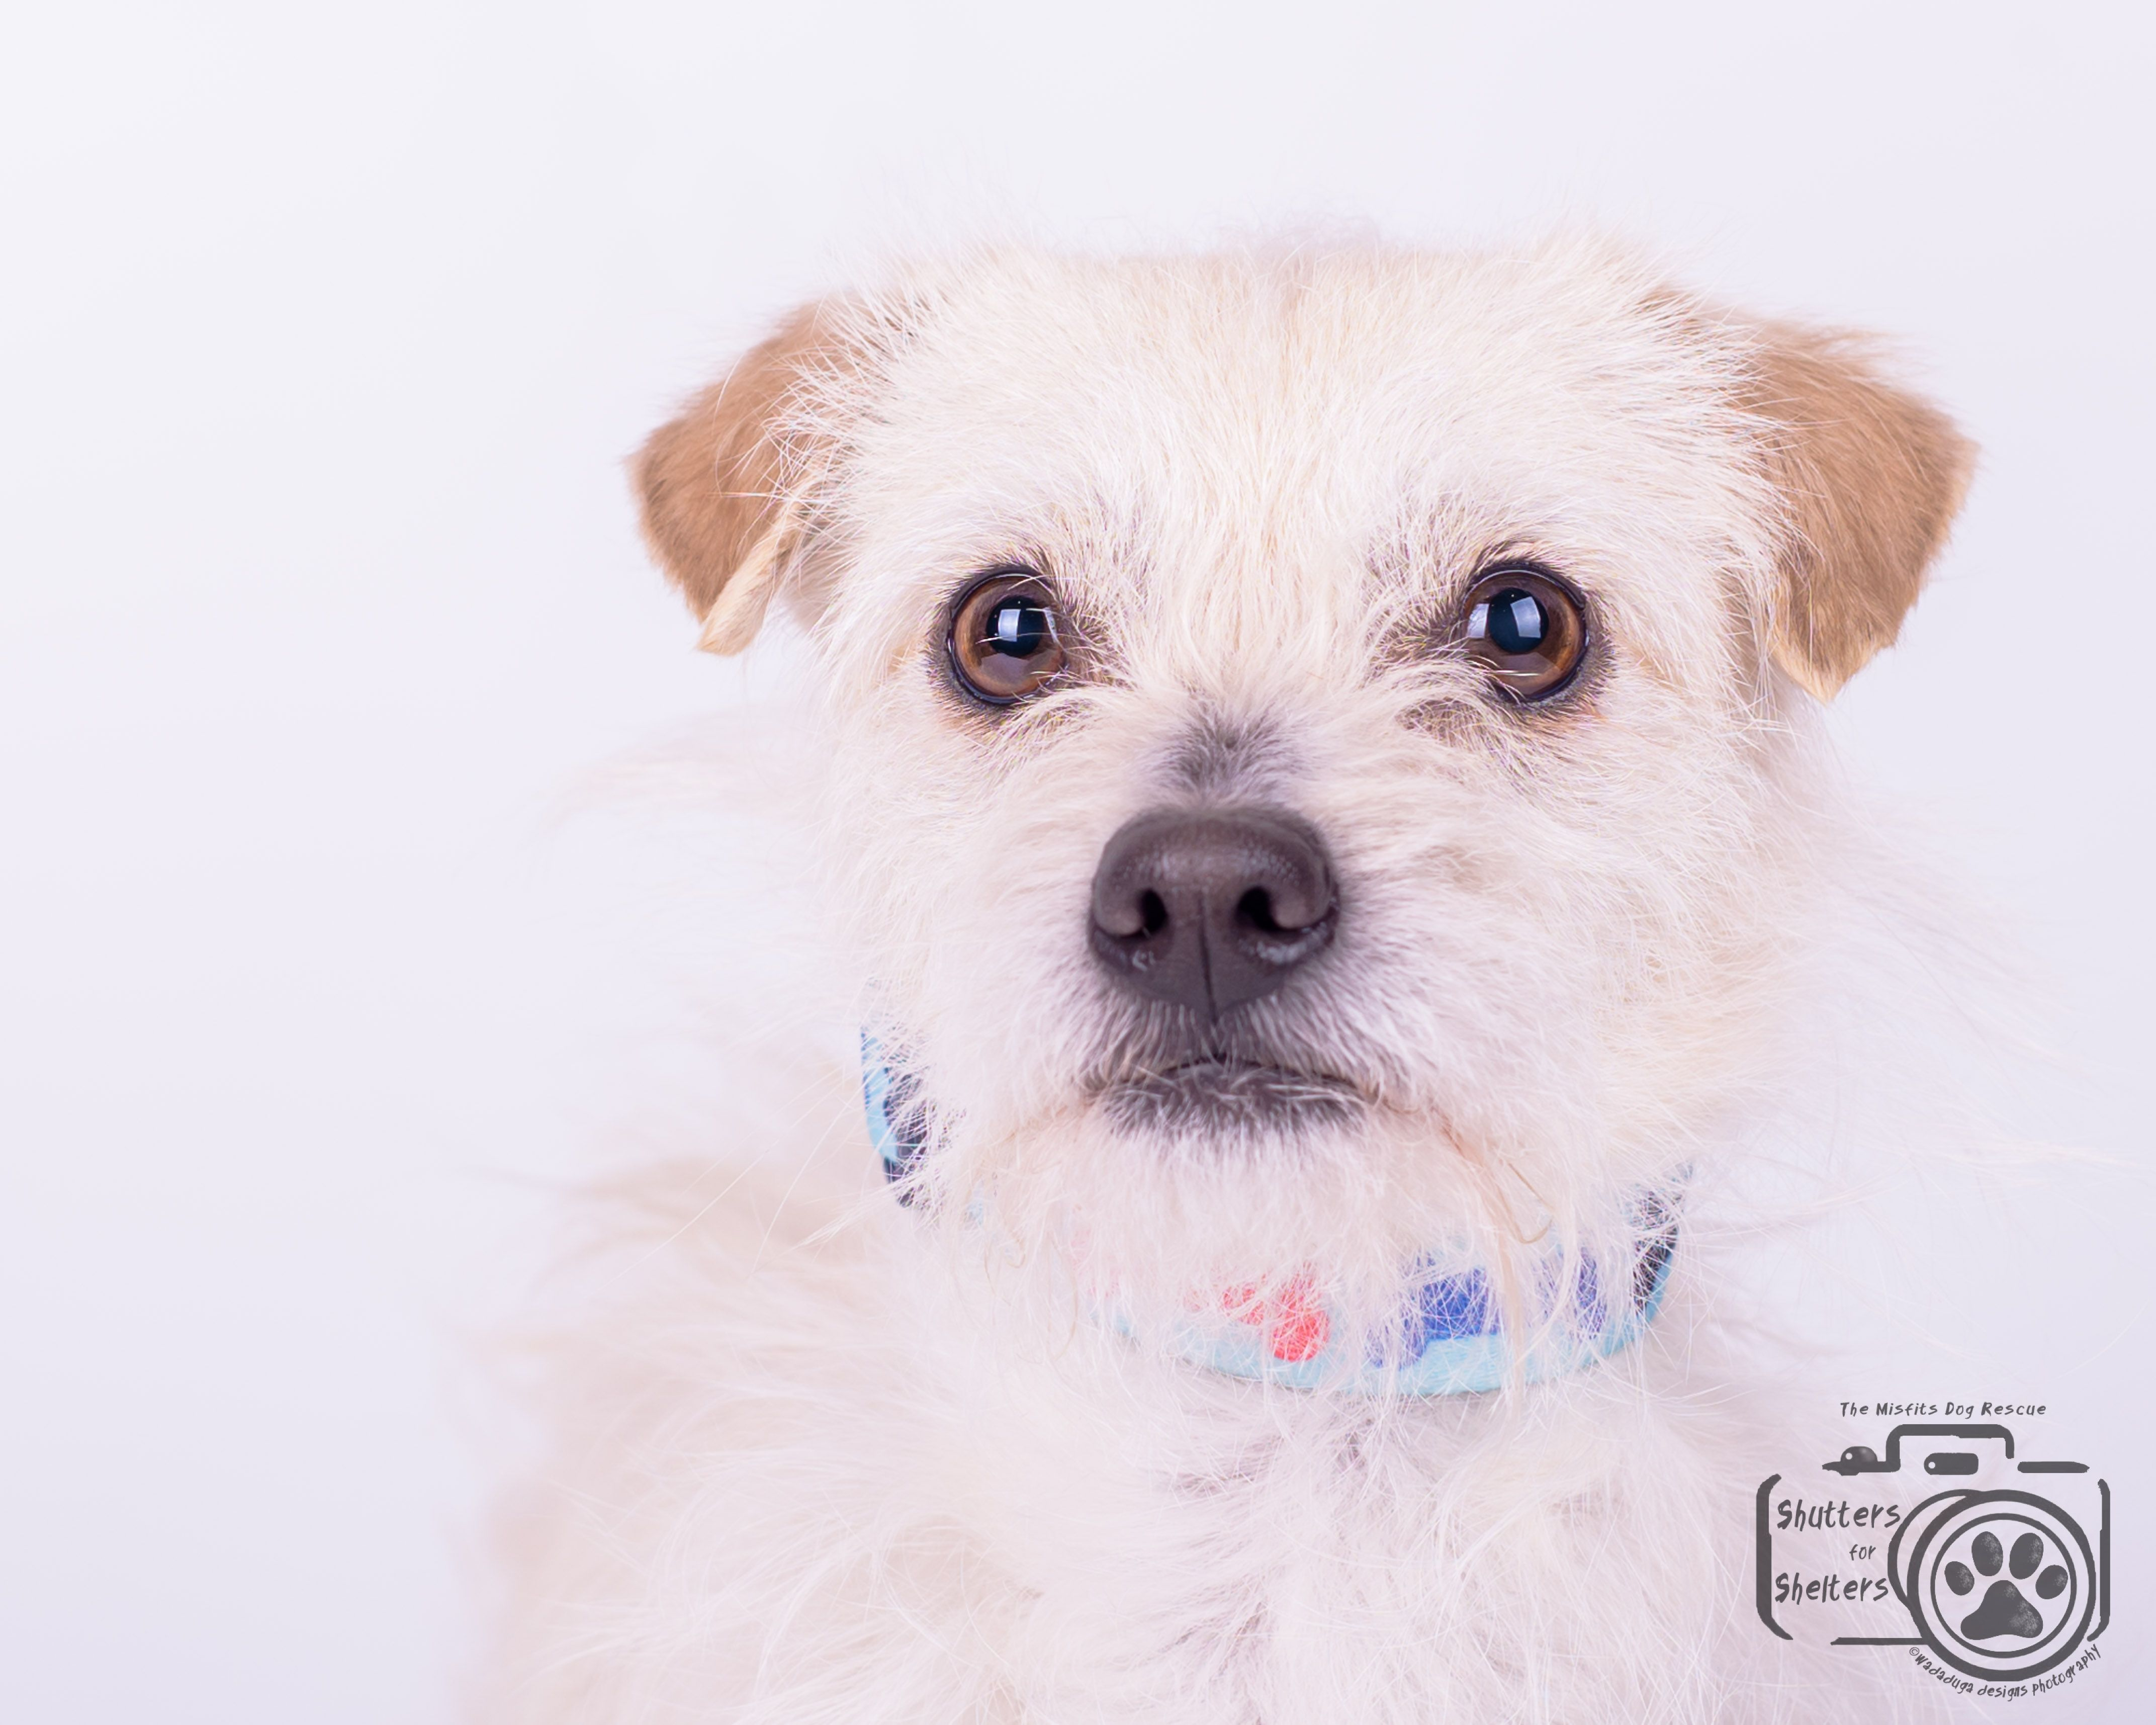 Toxirn Dog For Adoption In Colorado Springs Co Adn 529477 On Puppyfinder Com Gender Male Age Young With Images Dog Adoption